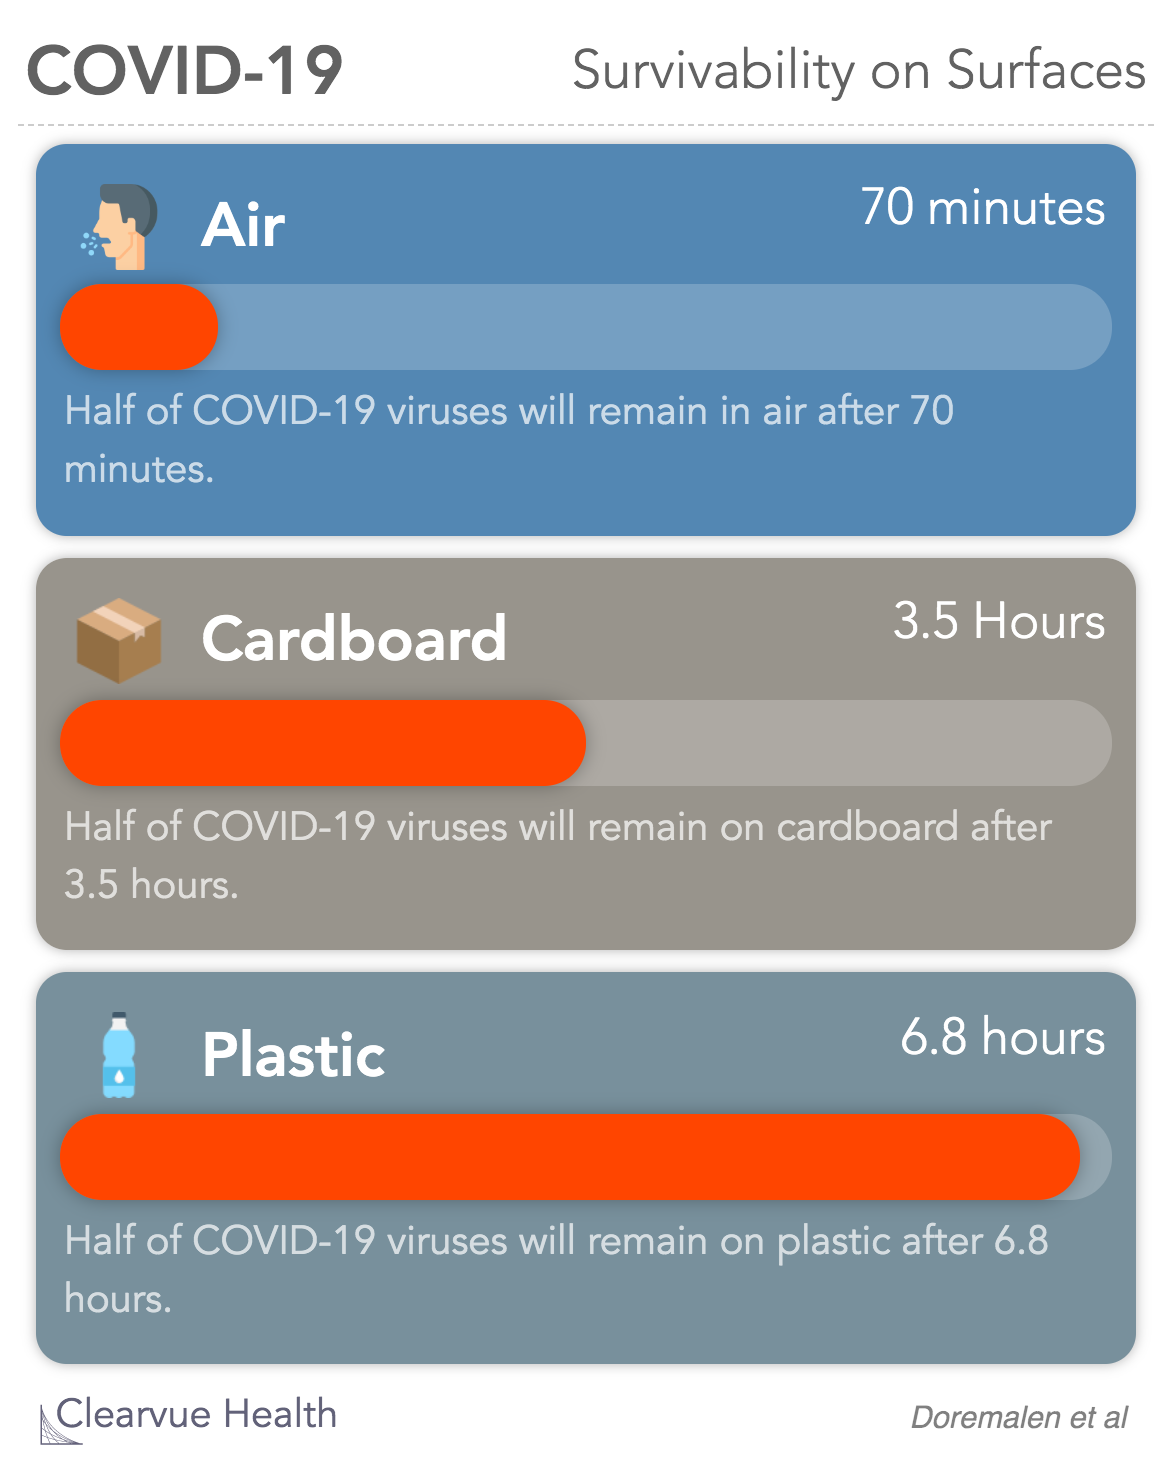 COVID-19 Survivability on surfaces